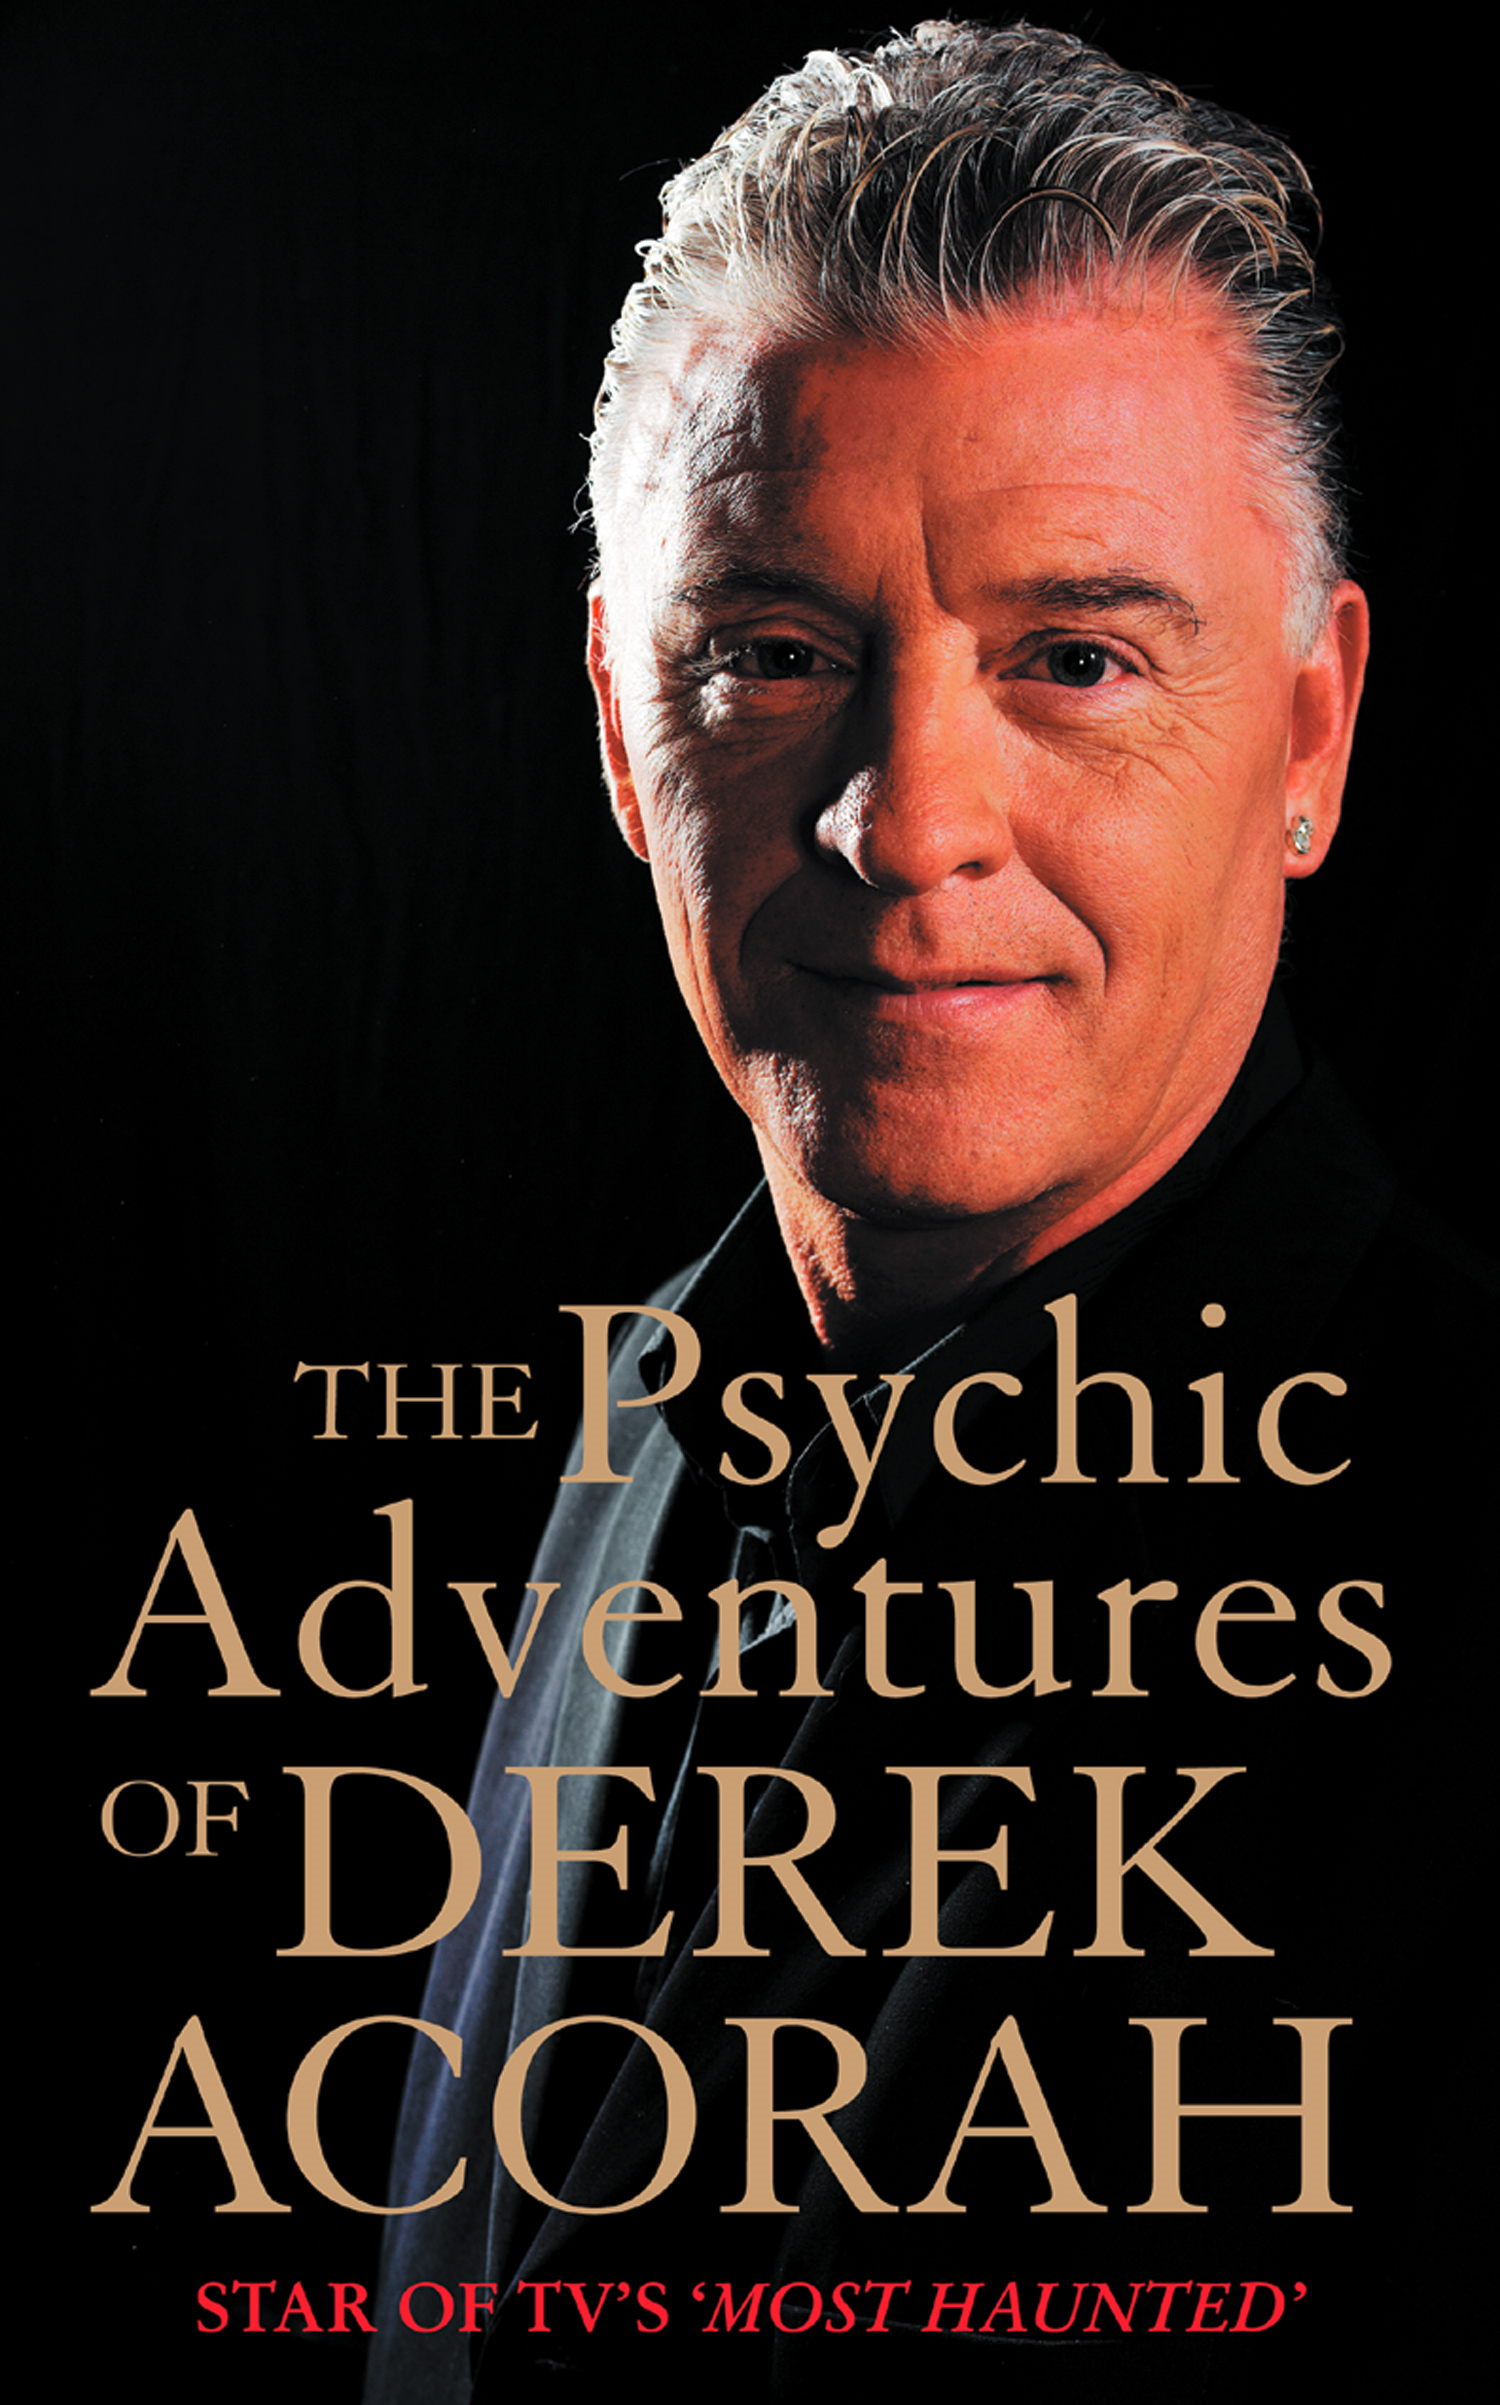 The Psychic Adventures of Derek Acorah: Star of TV's Most Haunted By: Derek Acorah